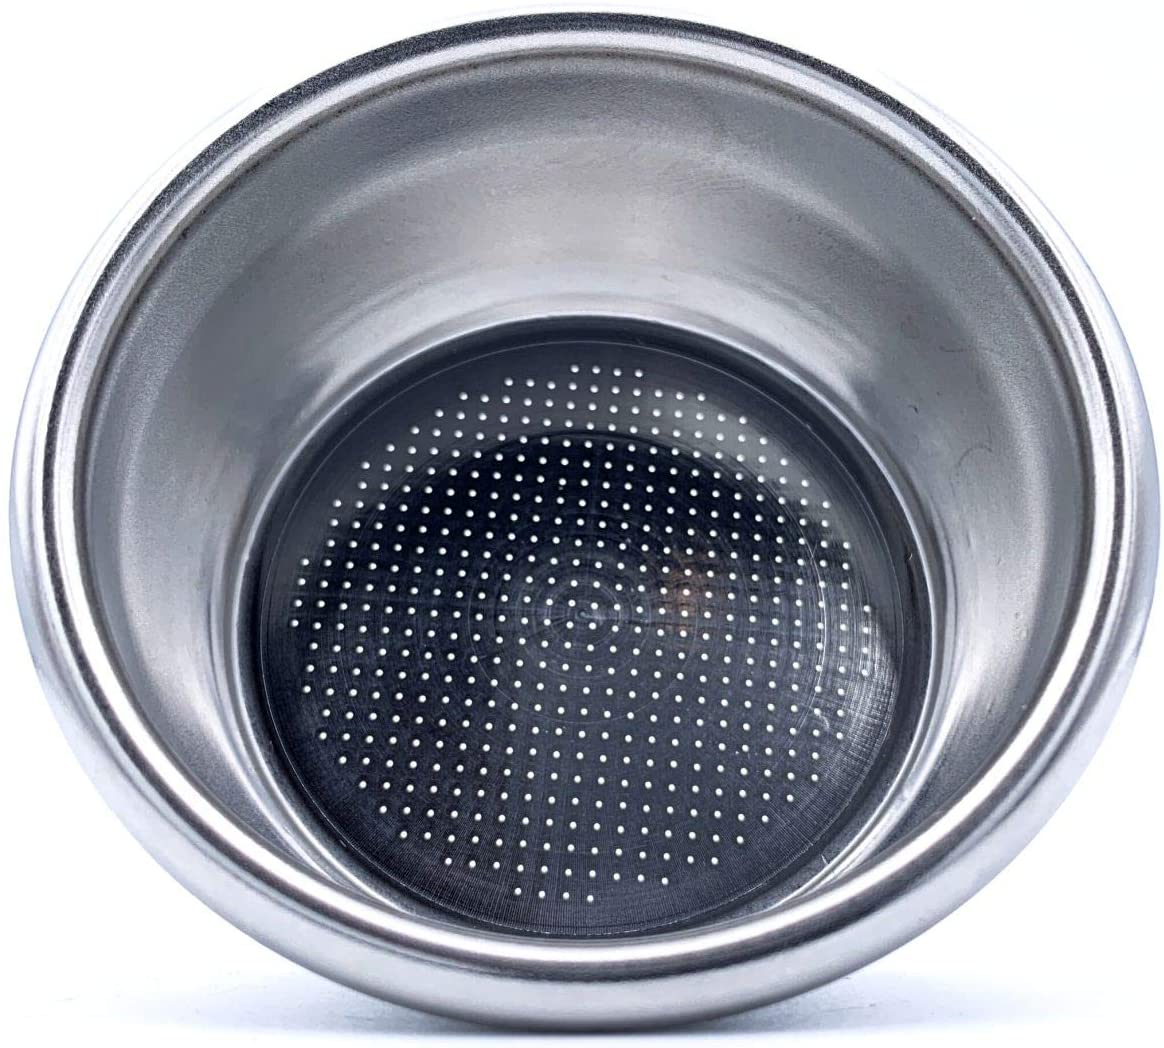 54mm 2 Cup Single Wall Cash special price Coffee Max 47% OFF Basket St Filter Non-Pressurized -